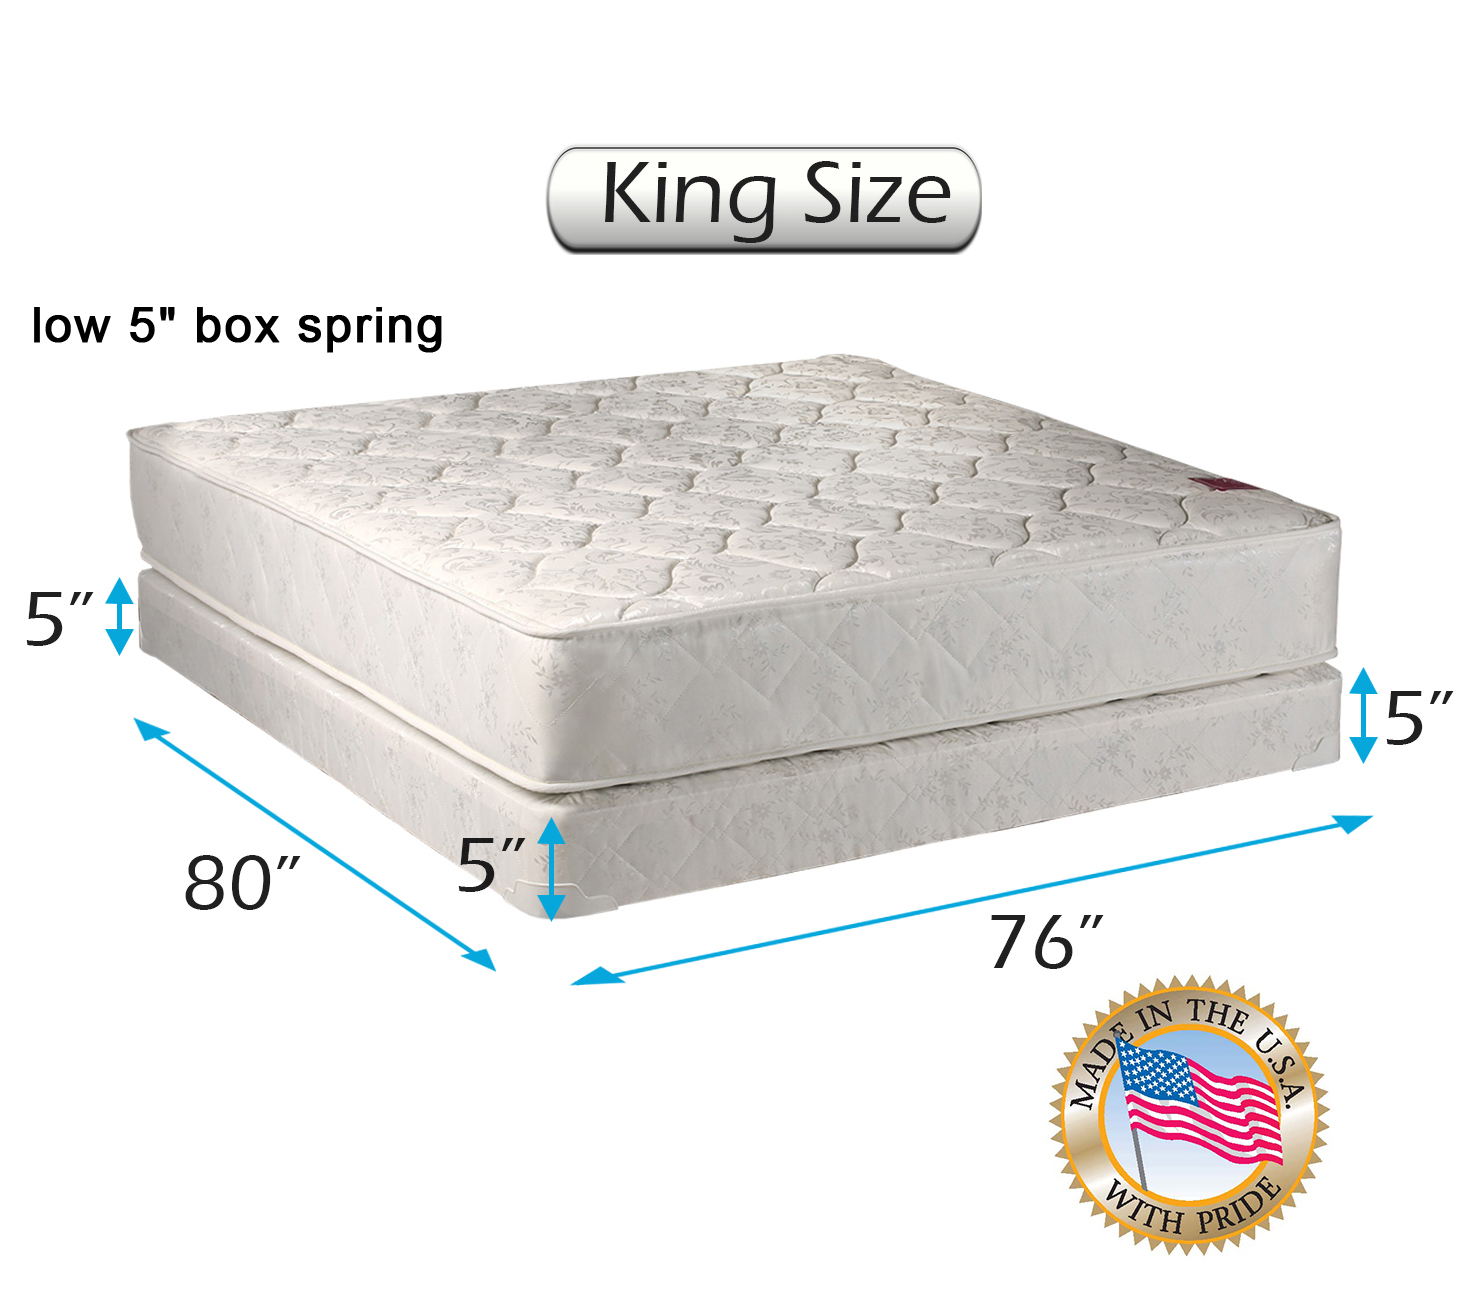 Legacy King Size 76 X80 X8 Mattress And Low Profile Box Spring Set With Bed Frame Included Fully Assembled Good For Your Back Superior Quality Long Lasting And 2 Sided By Dream